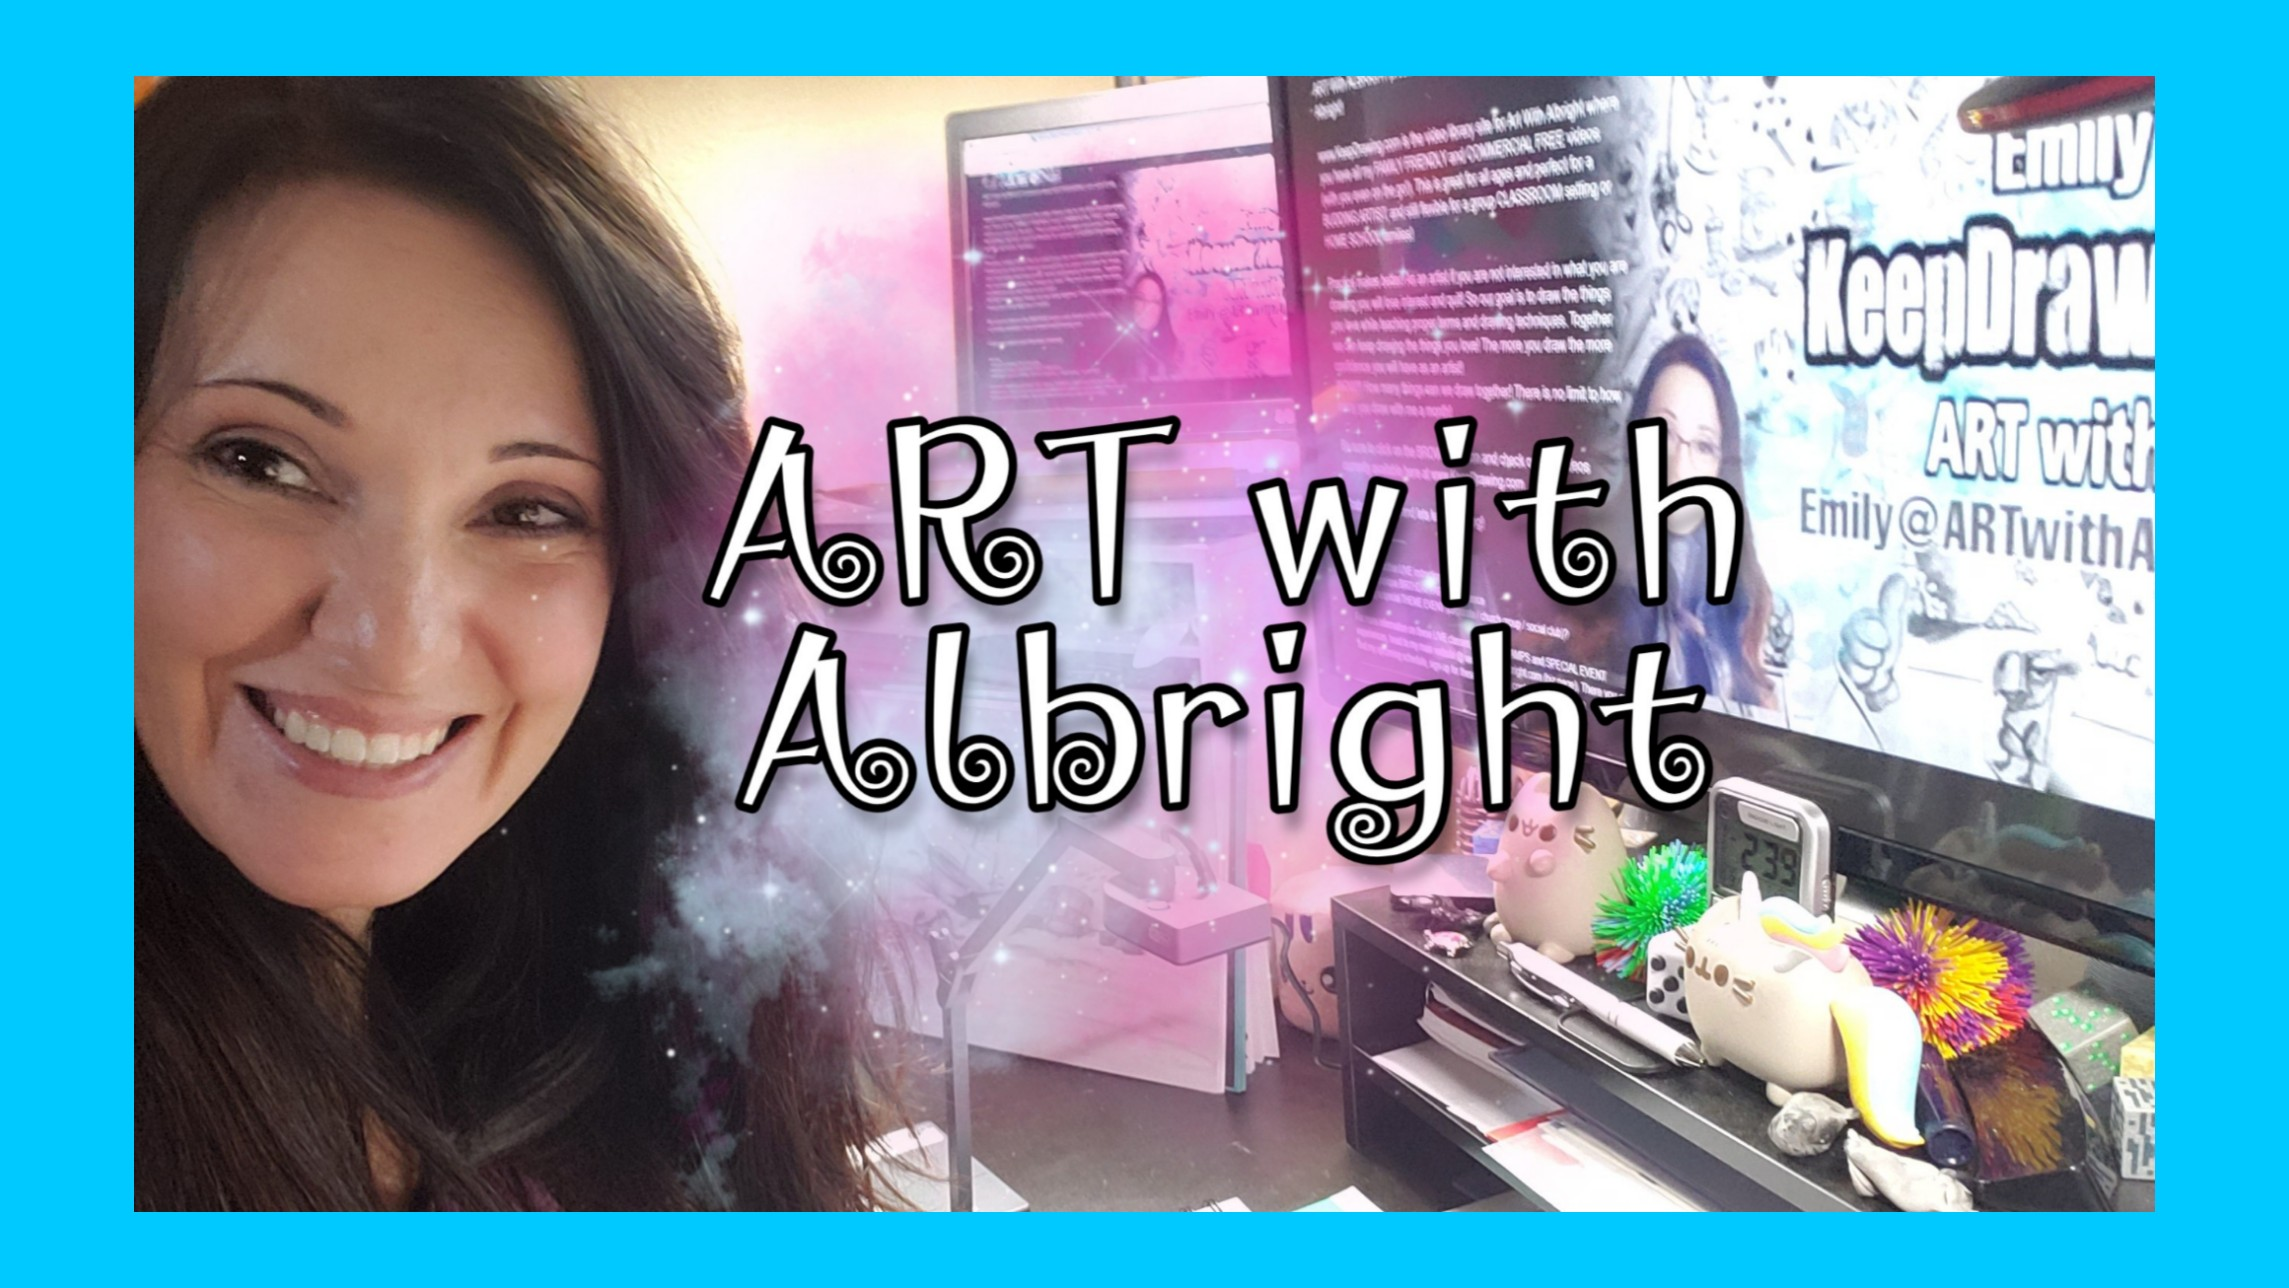 ART with Albright presents Keep Drawing